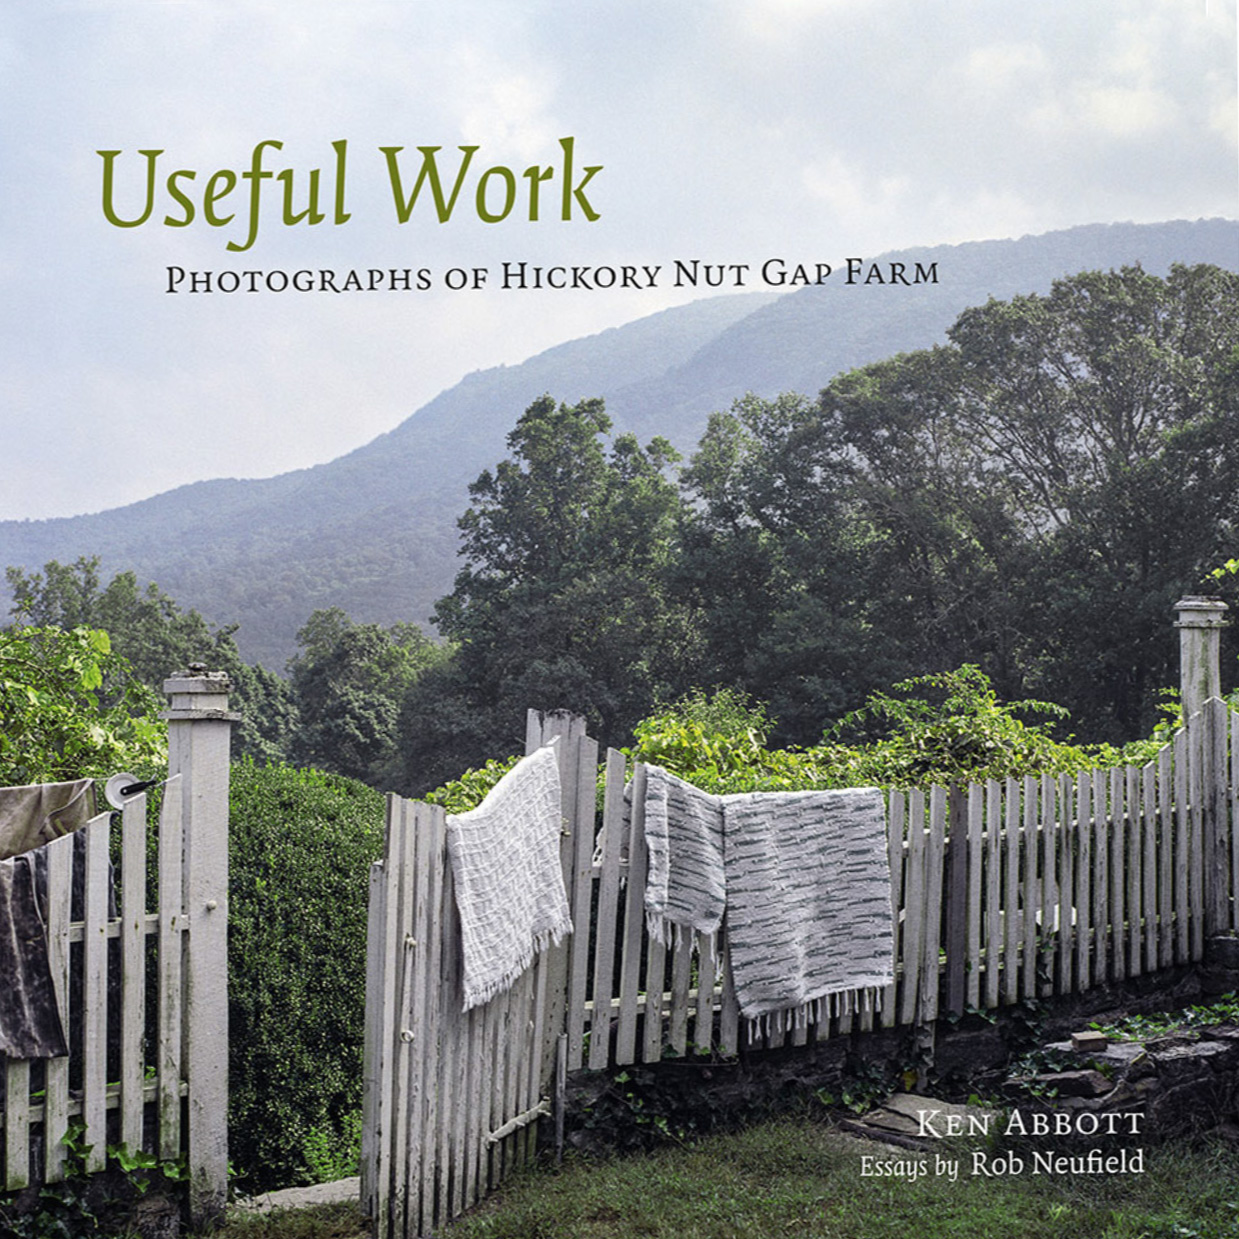 """- """"Ken Abbott's photography and Hickory Nut Gap Farm is a marriage made in heaven, or about as close as we get to heaven here in the Blue Ridge Mountains in western North Carolina. For almost a hundred years, one extended family has lived on and created a uniquely beautiful farm and community in this place. In Useful Work, Ken Abbott so thoroughly and beautifully depicts the surface and soul of this home and farm, that he reminds us how the best photographers can focus on something seemingly small, yet evoke our common humanity. This book represents an extraordinary achievement in life and in art.""""– Alex Harris, Center for Documentary Studies, Duke University"""